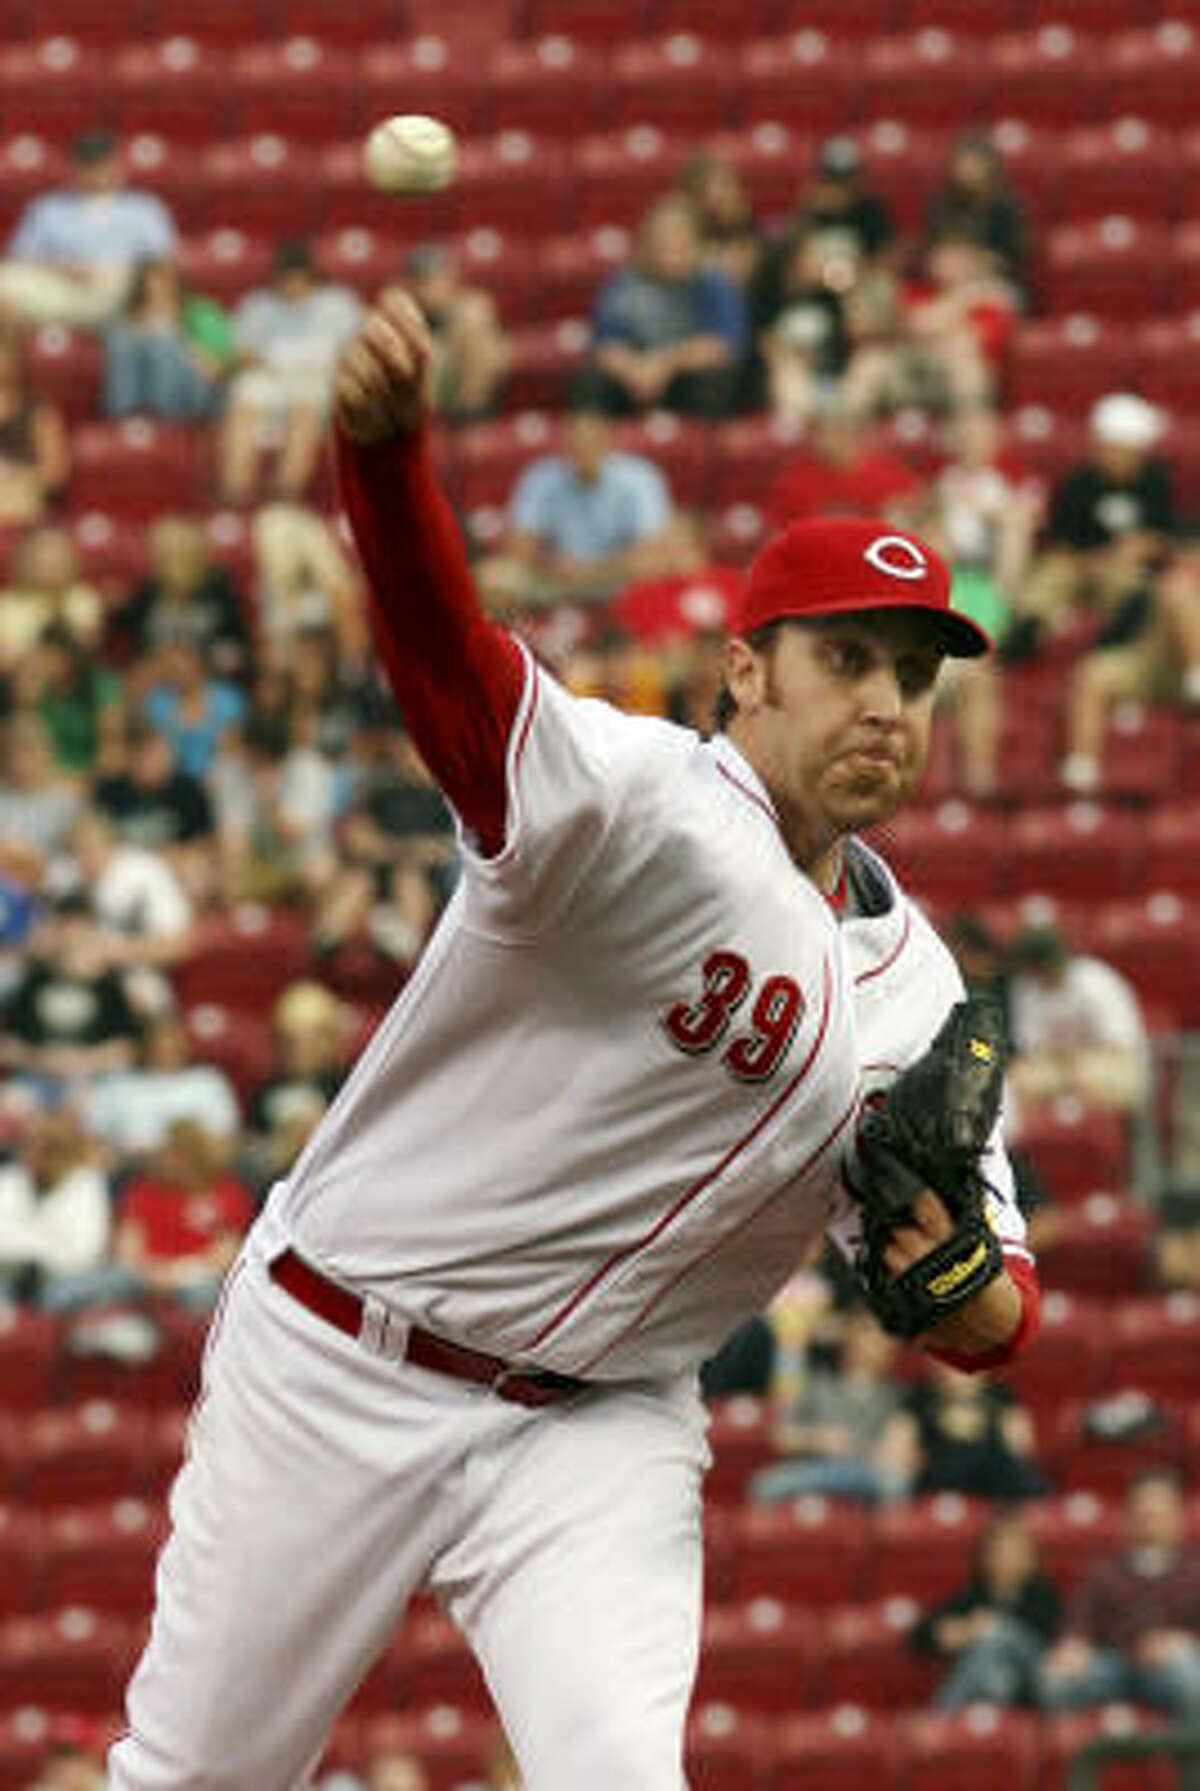 Reds' Aaron Harang pitches against the Astros in the first inning.